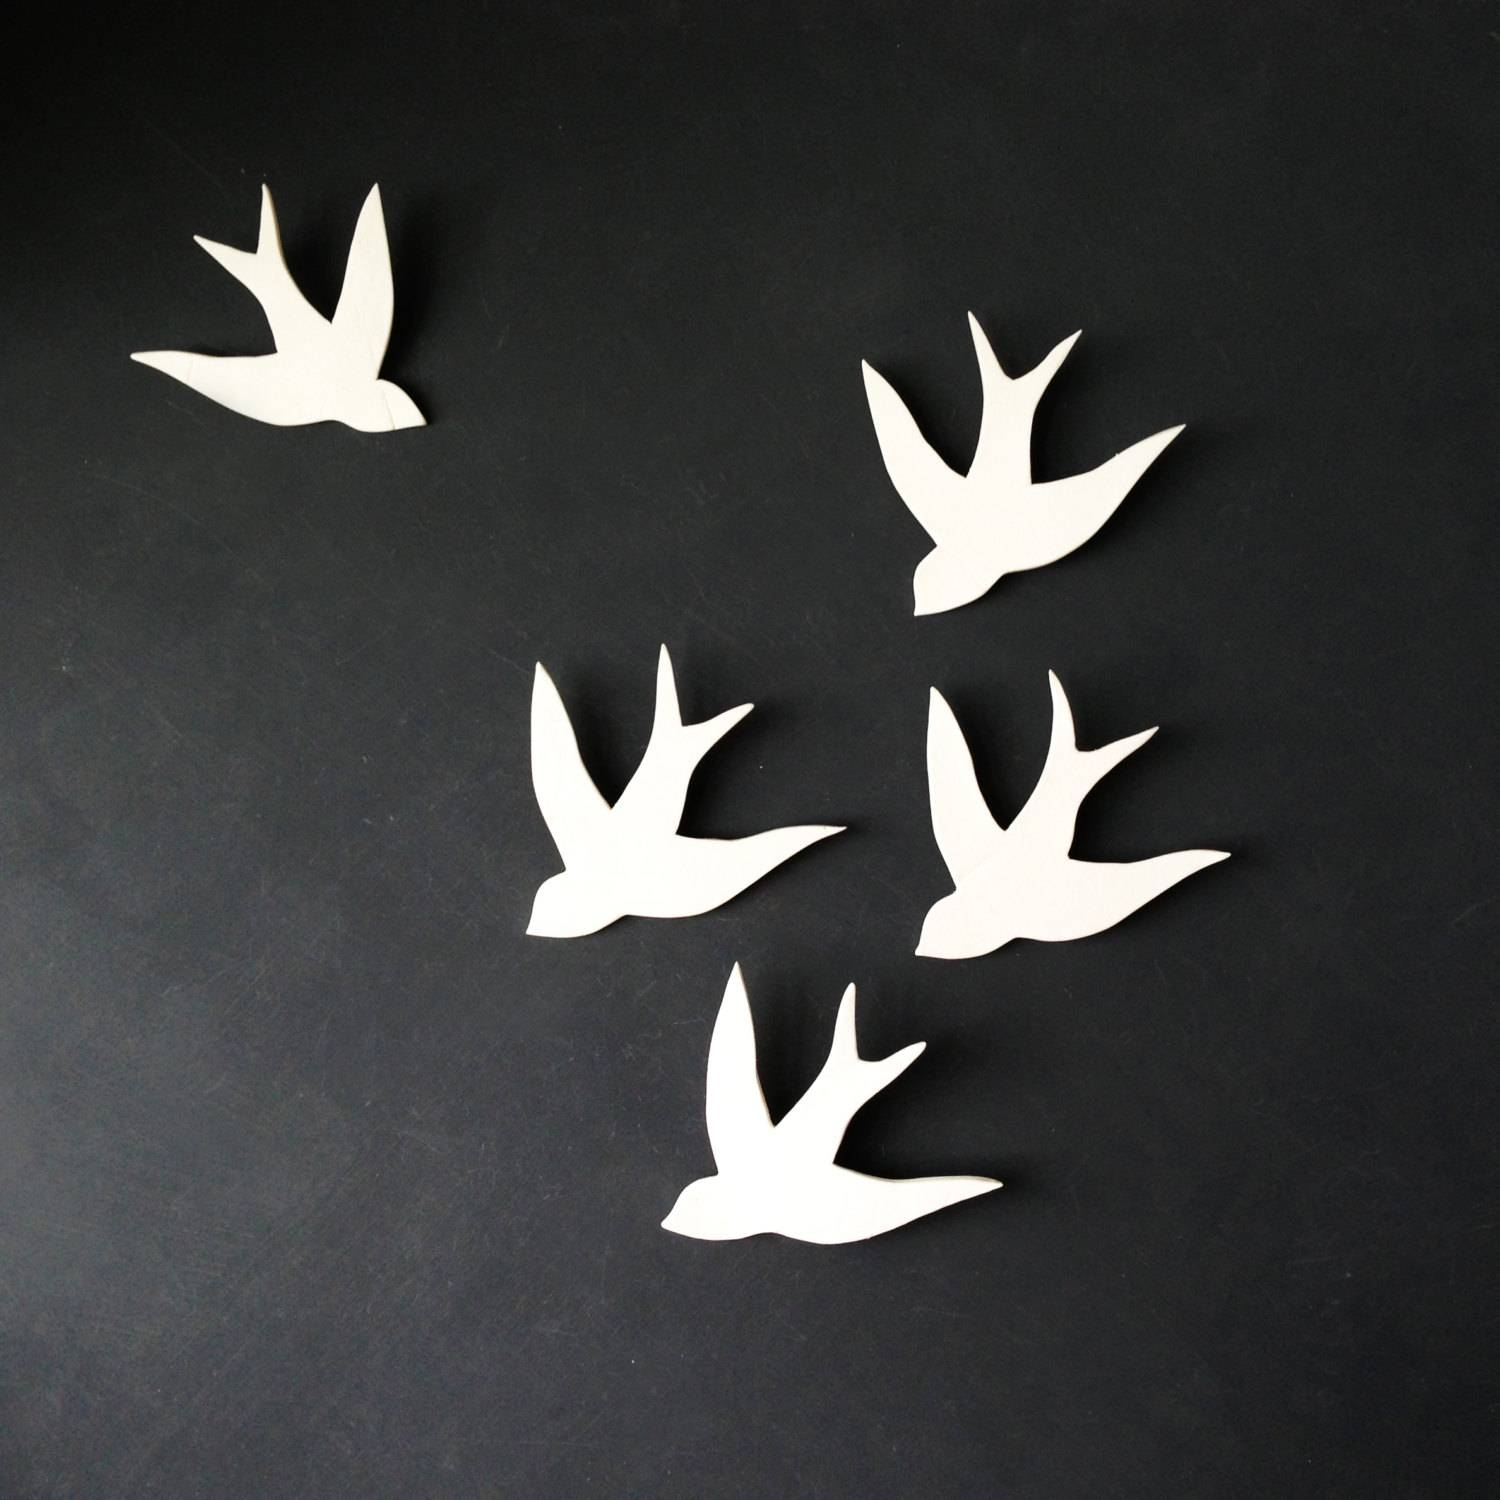 Articles With 3D Flying Birds Wall Decor Tag: Birds Wall Decor Pertaining To Most Recent White Birds 3D Wall Art (View 5 of 20)